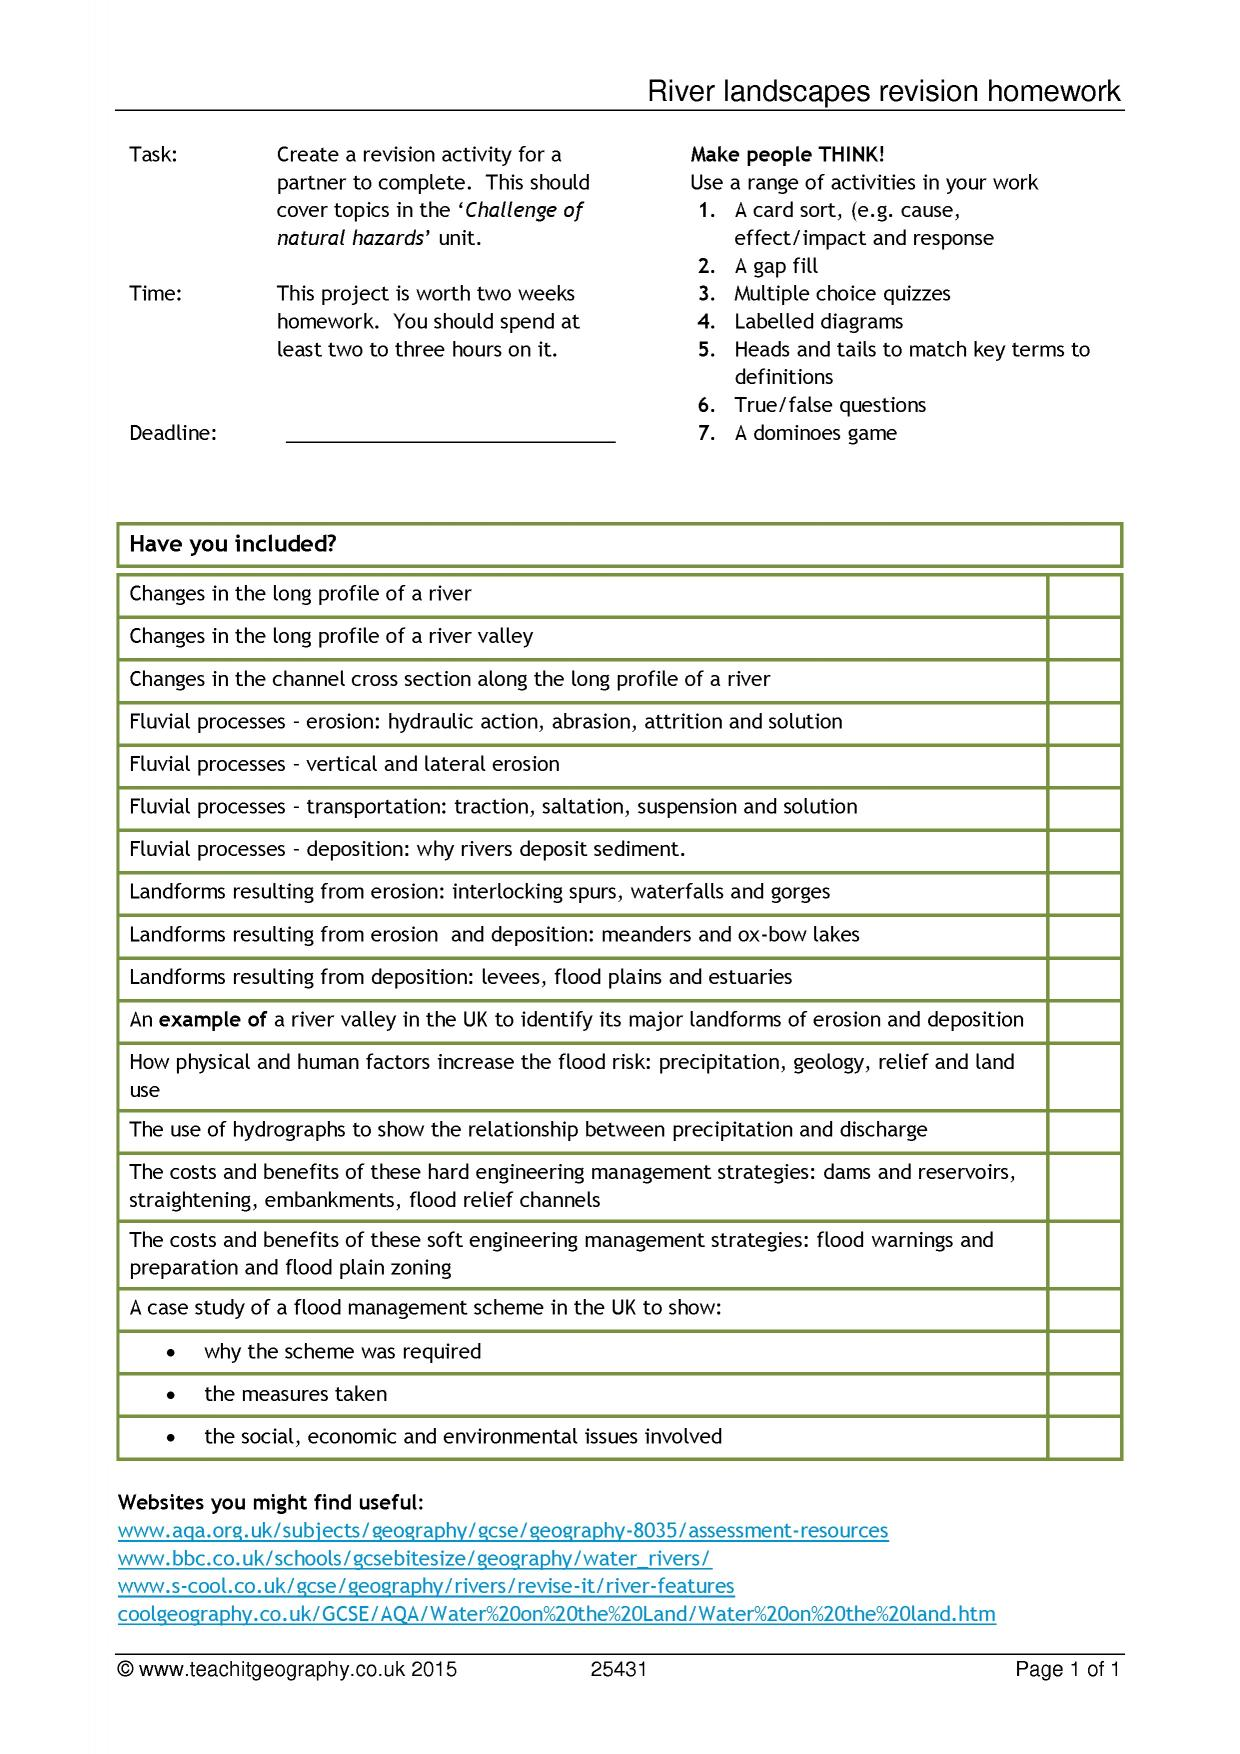 River Basin Activity Answer Key